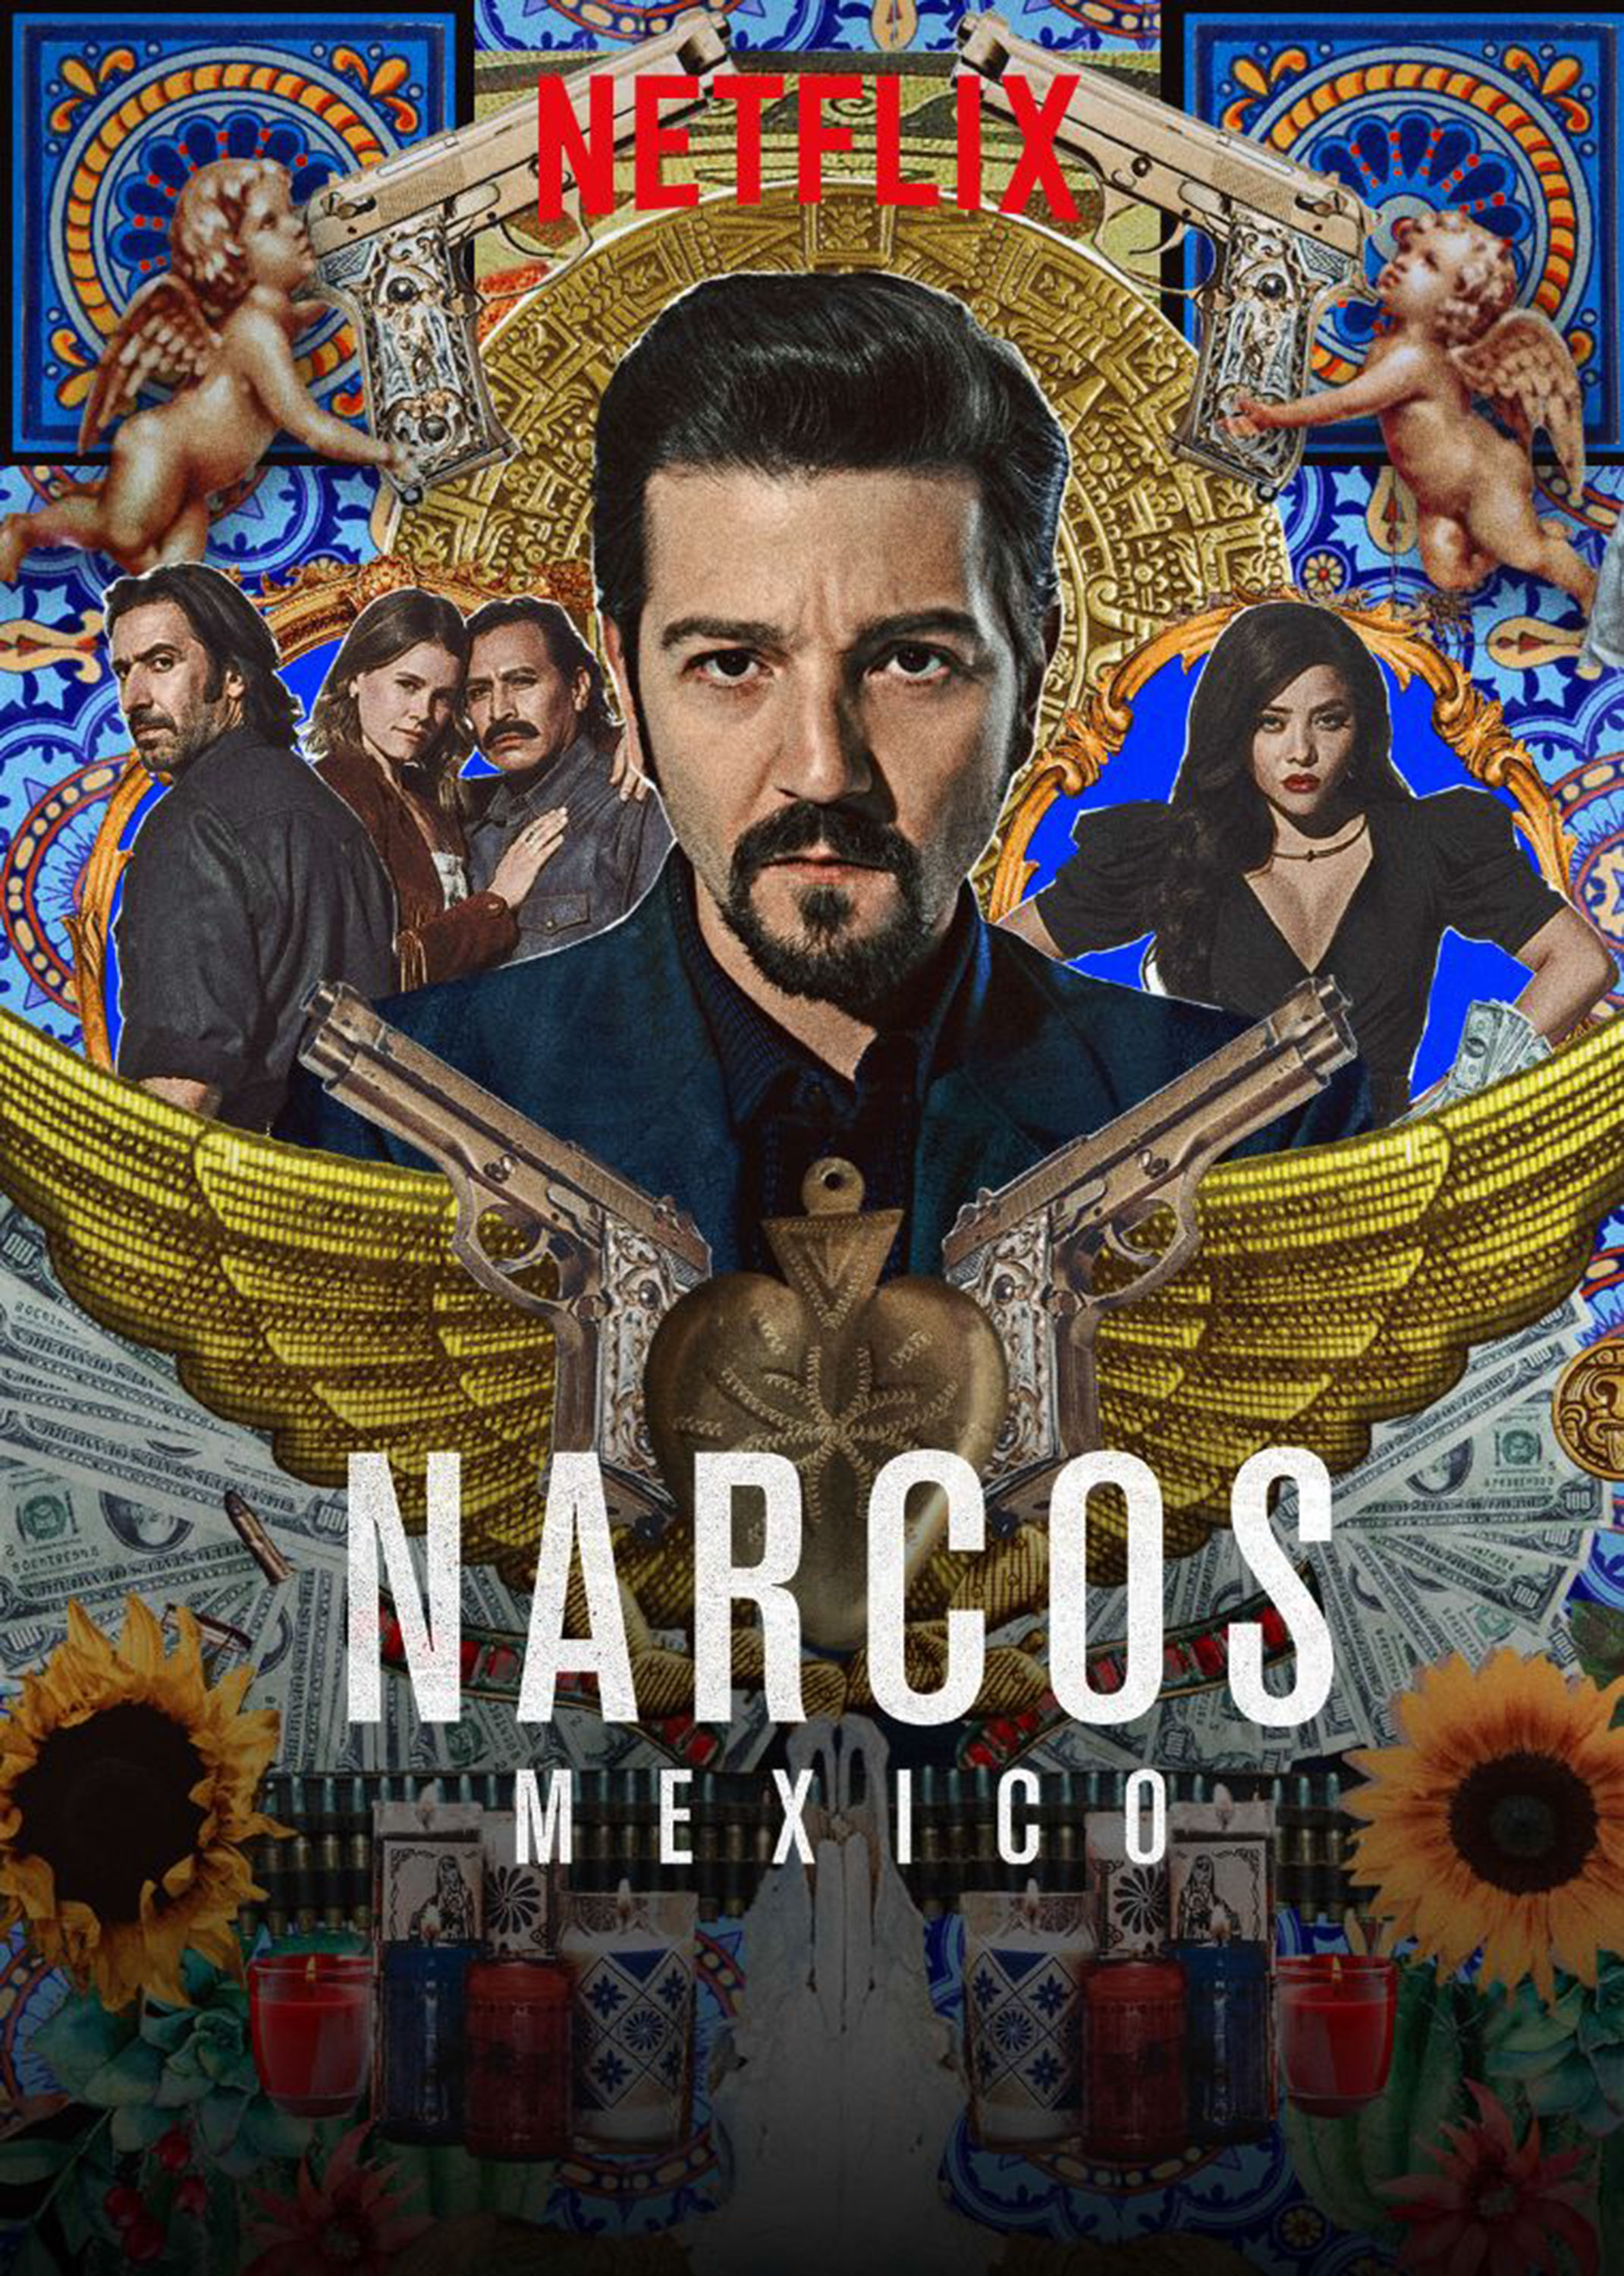 Narcos: Mexico (2018) S1 Hindi Dubbed Complete NF Series 720p HDRip 4.1GB Download